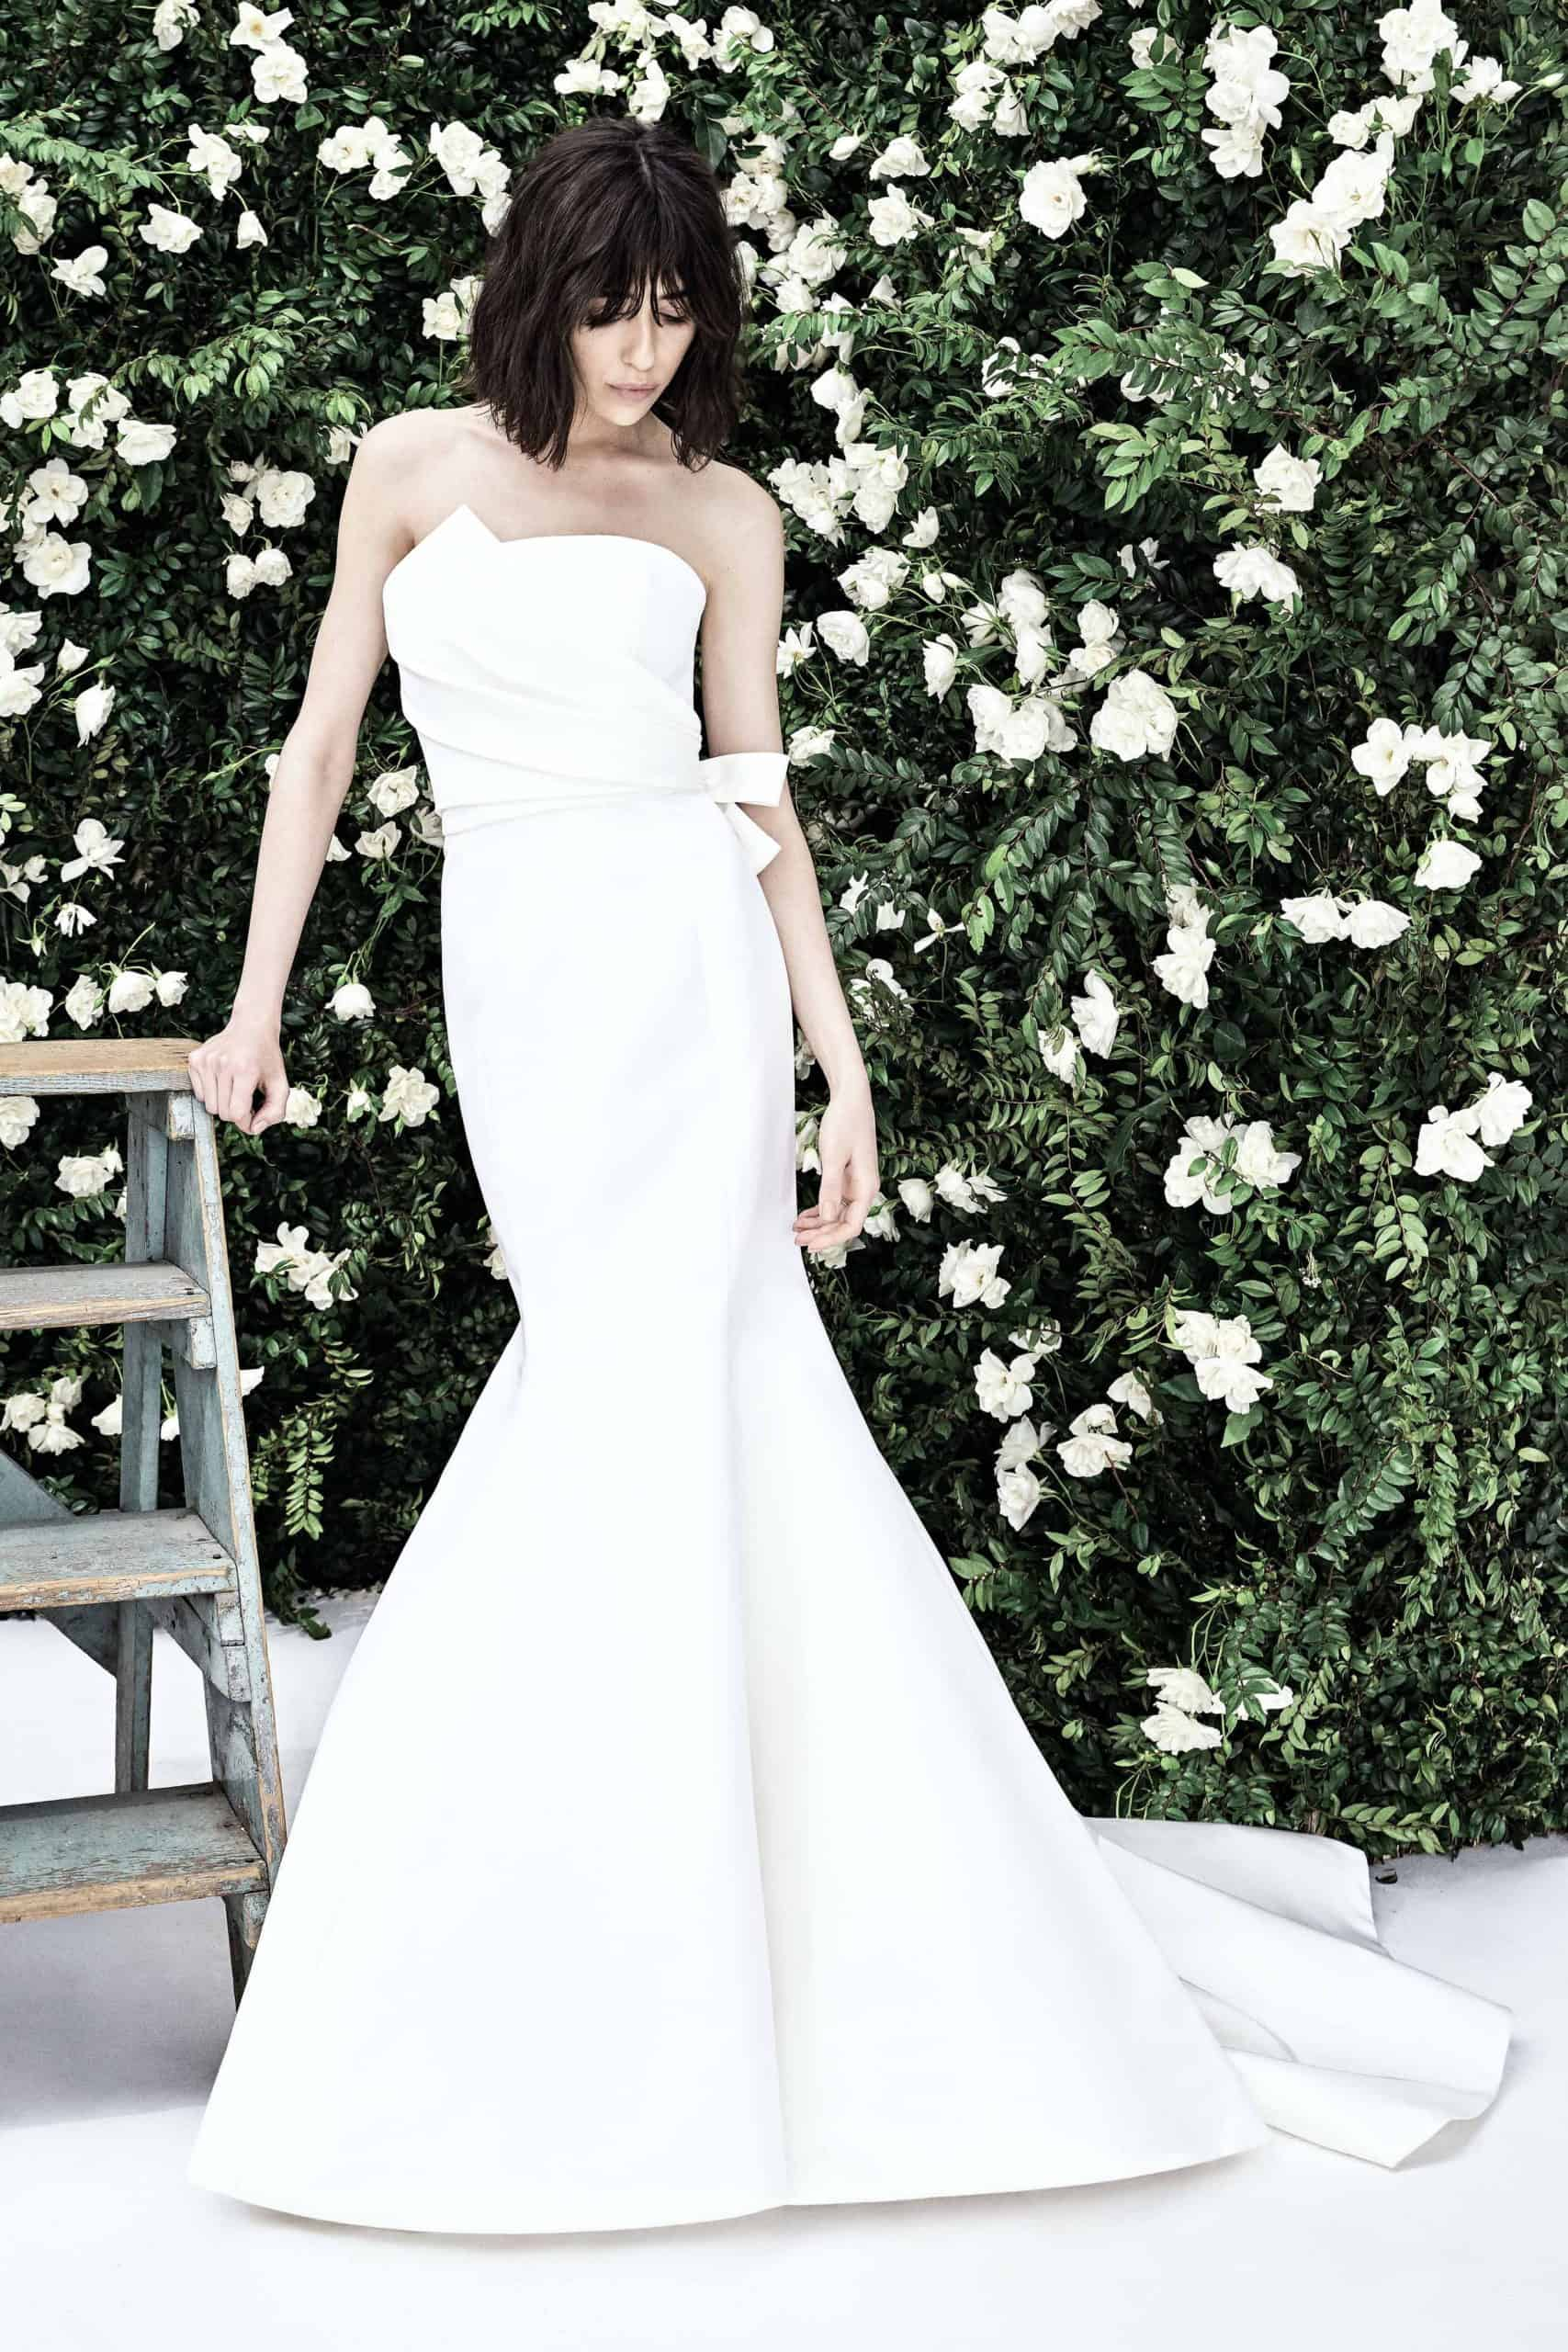 strapless wedding dress with a bow and mermaid  tail by Carolina Herrera